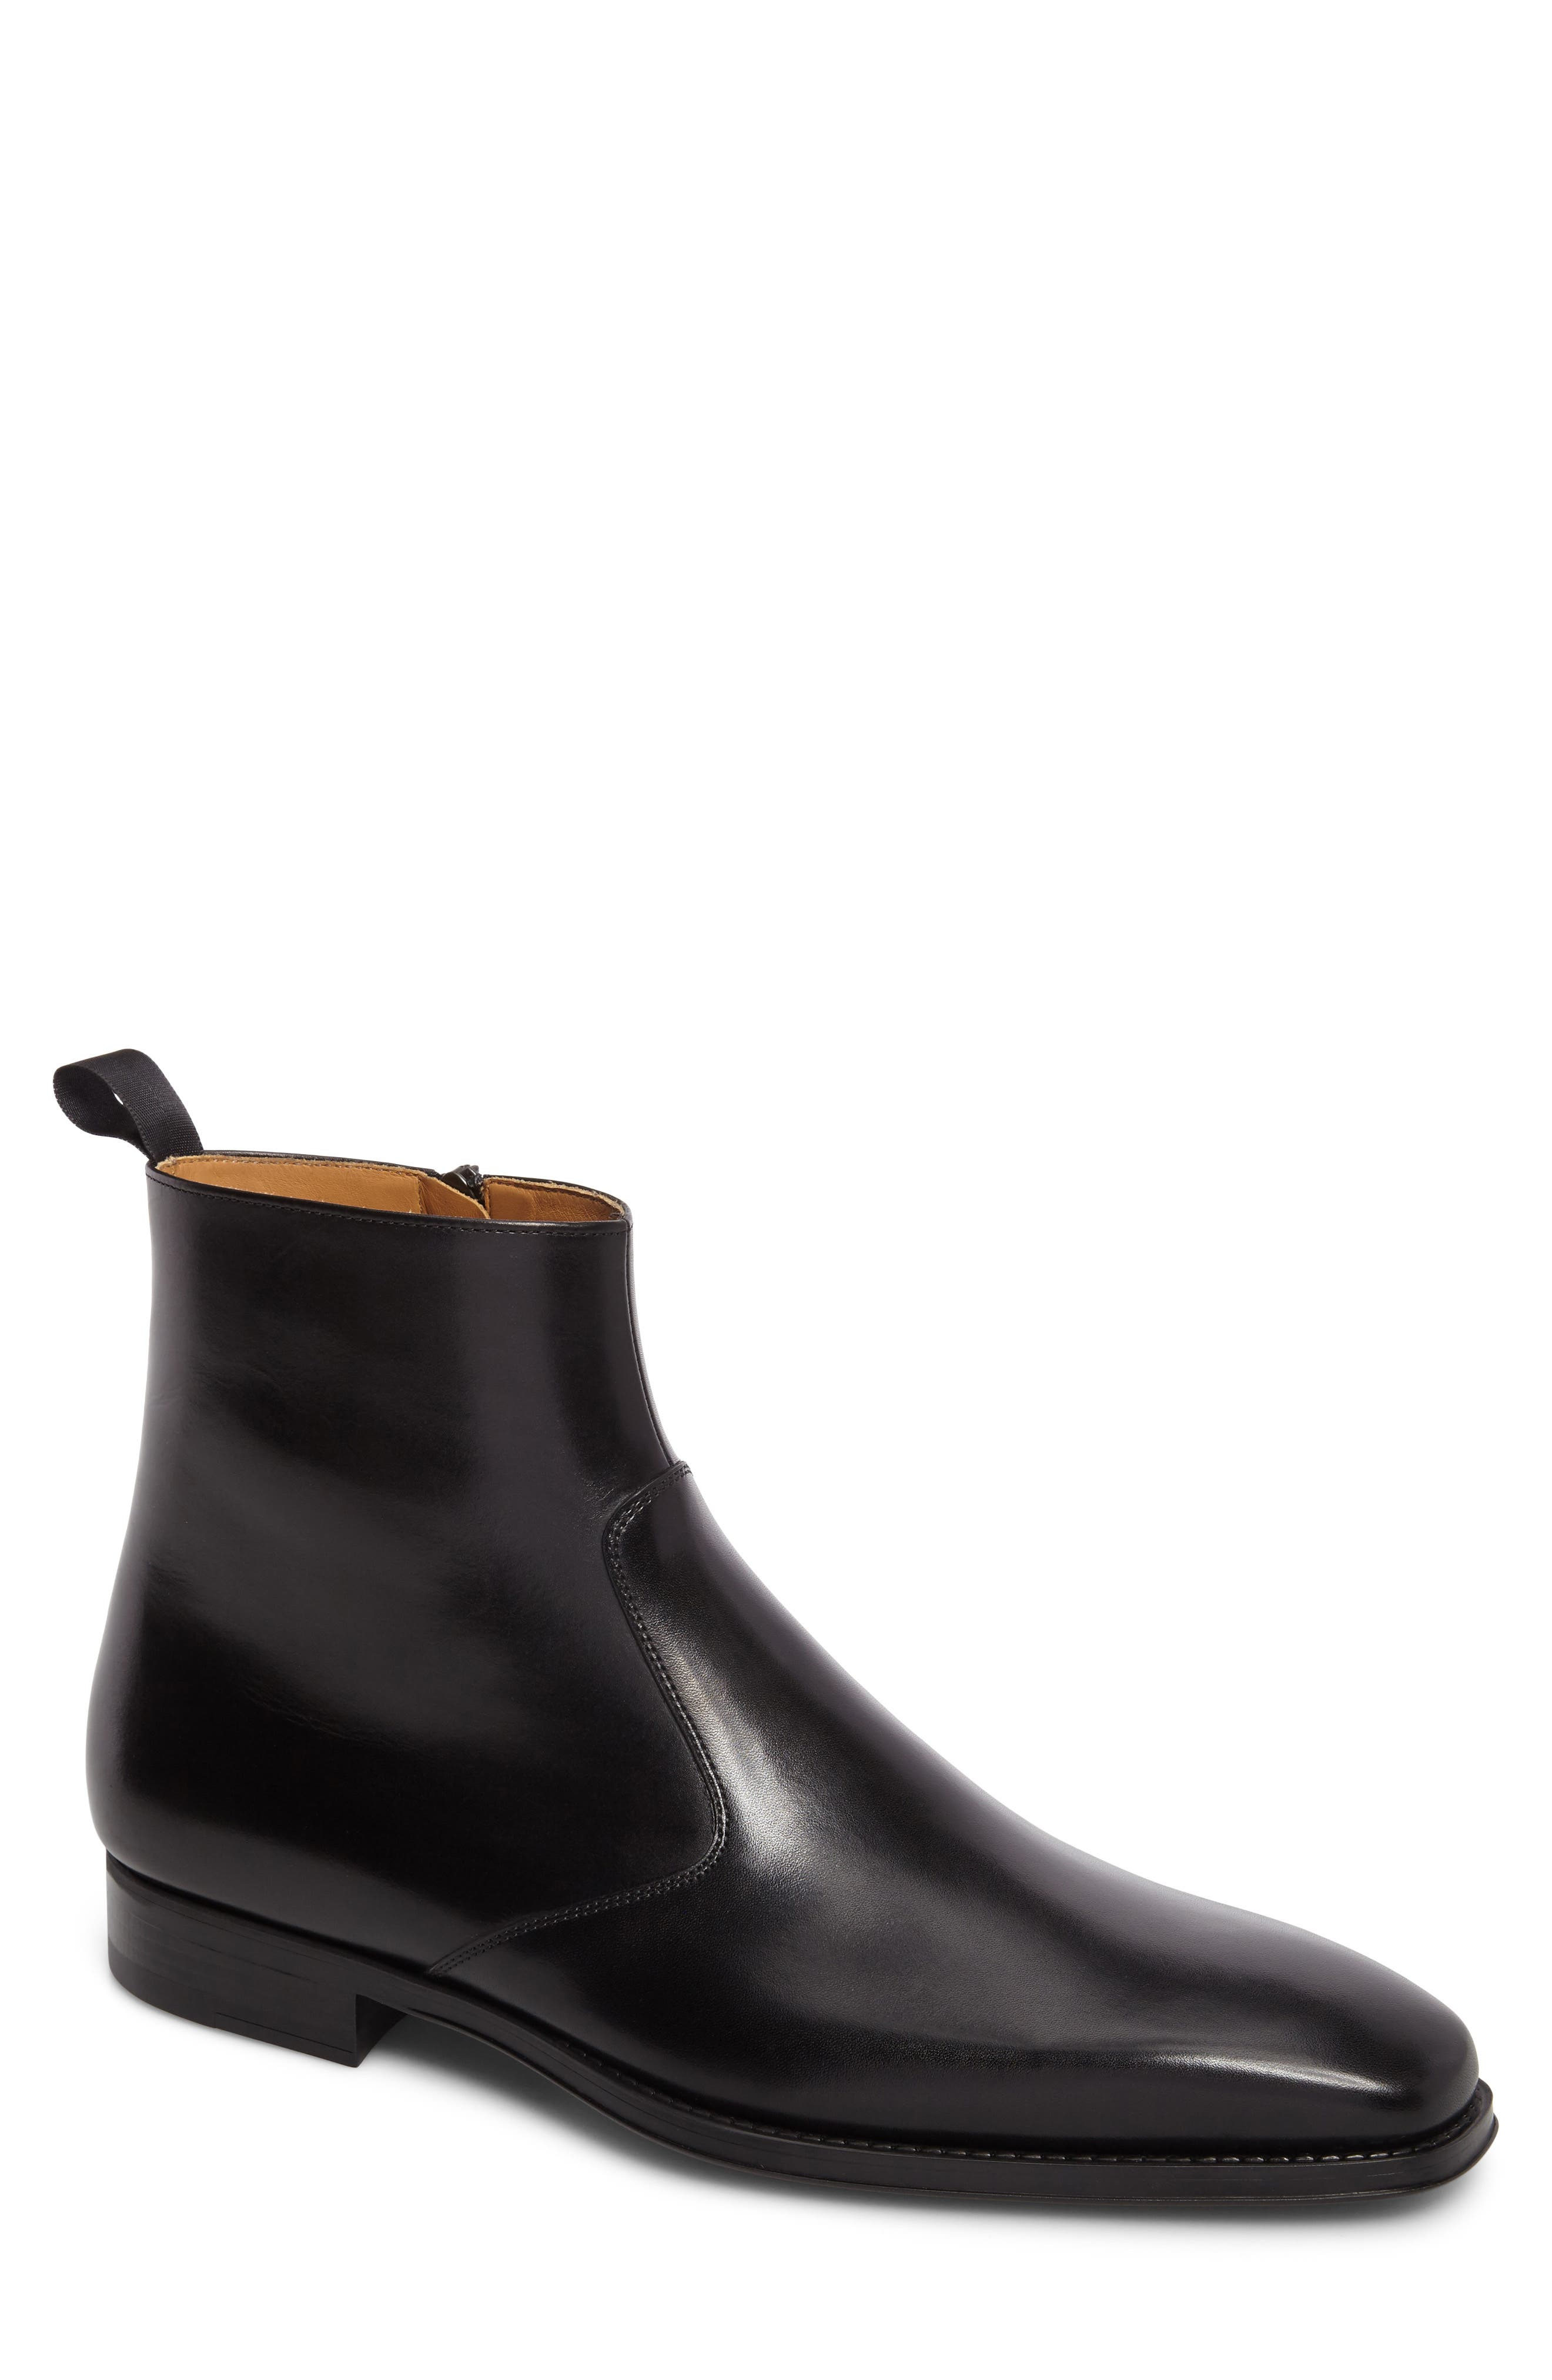 Rosdale Zip Boot,                         Main,                         color, BLACK LEATHER